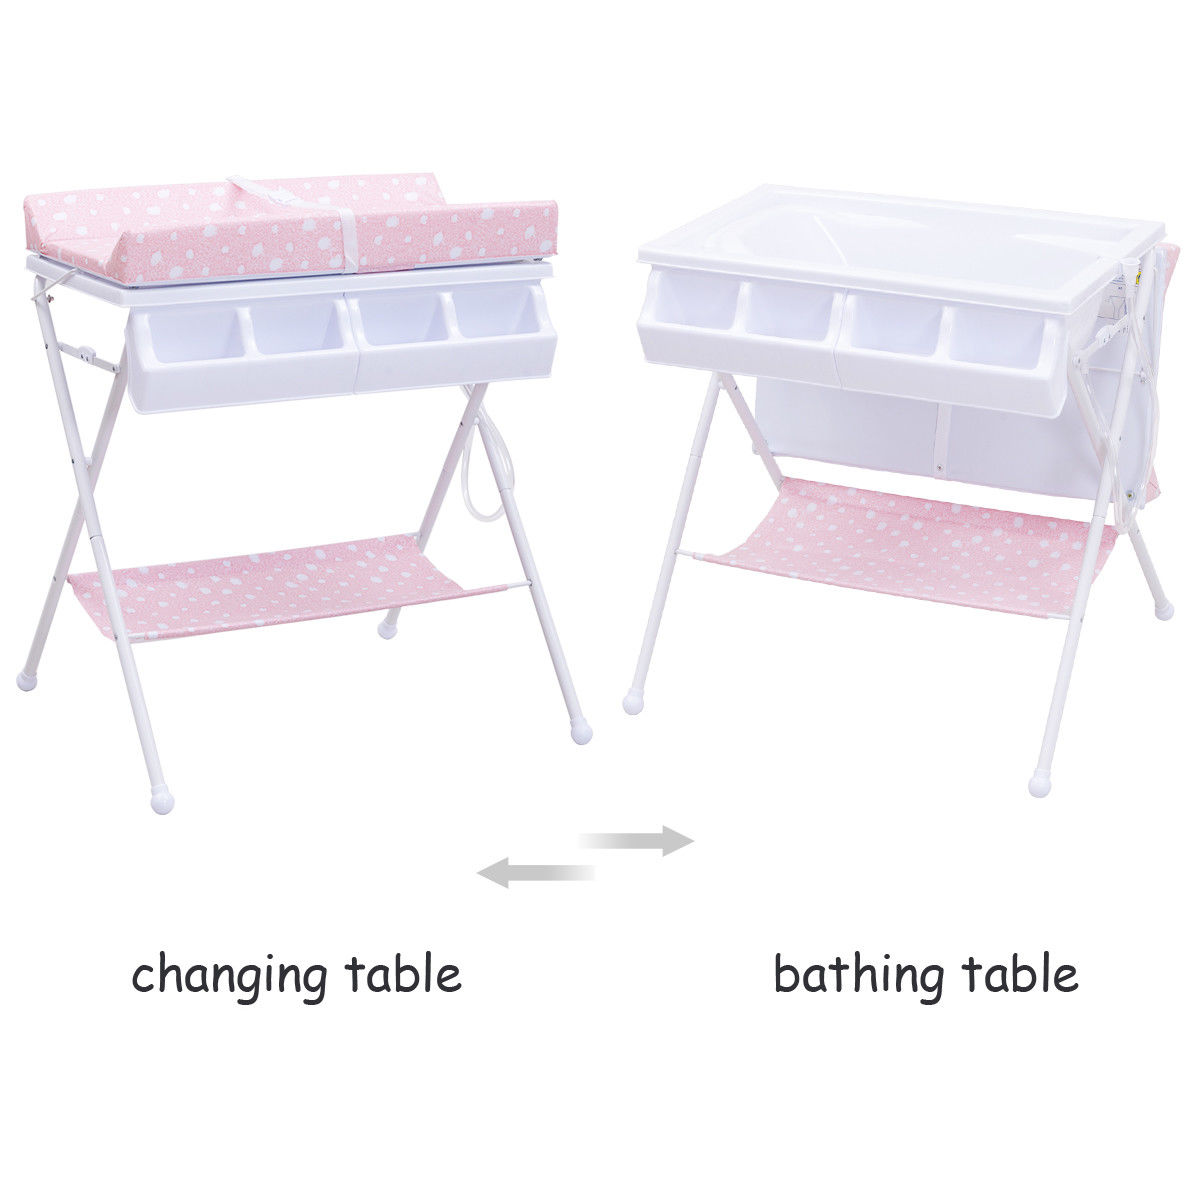 Costway Infant Baby Bath Changing Table Diaper Station Storage Organizer - image 4 of 8